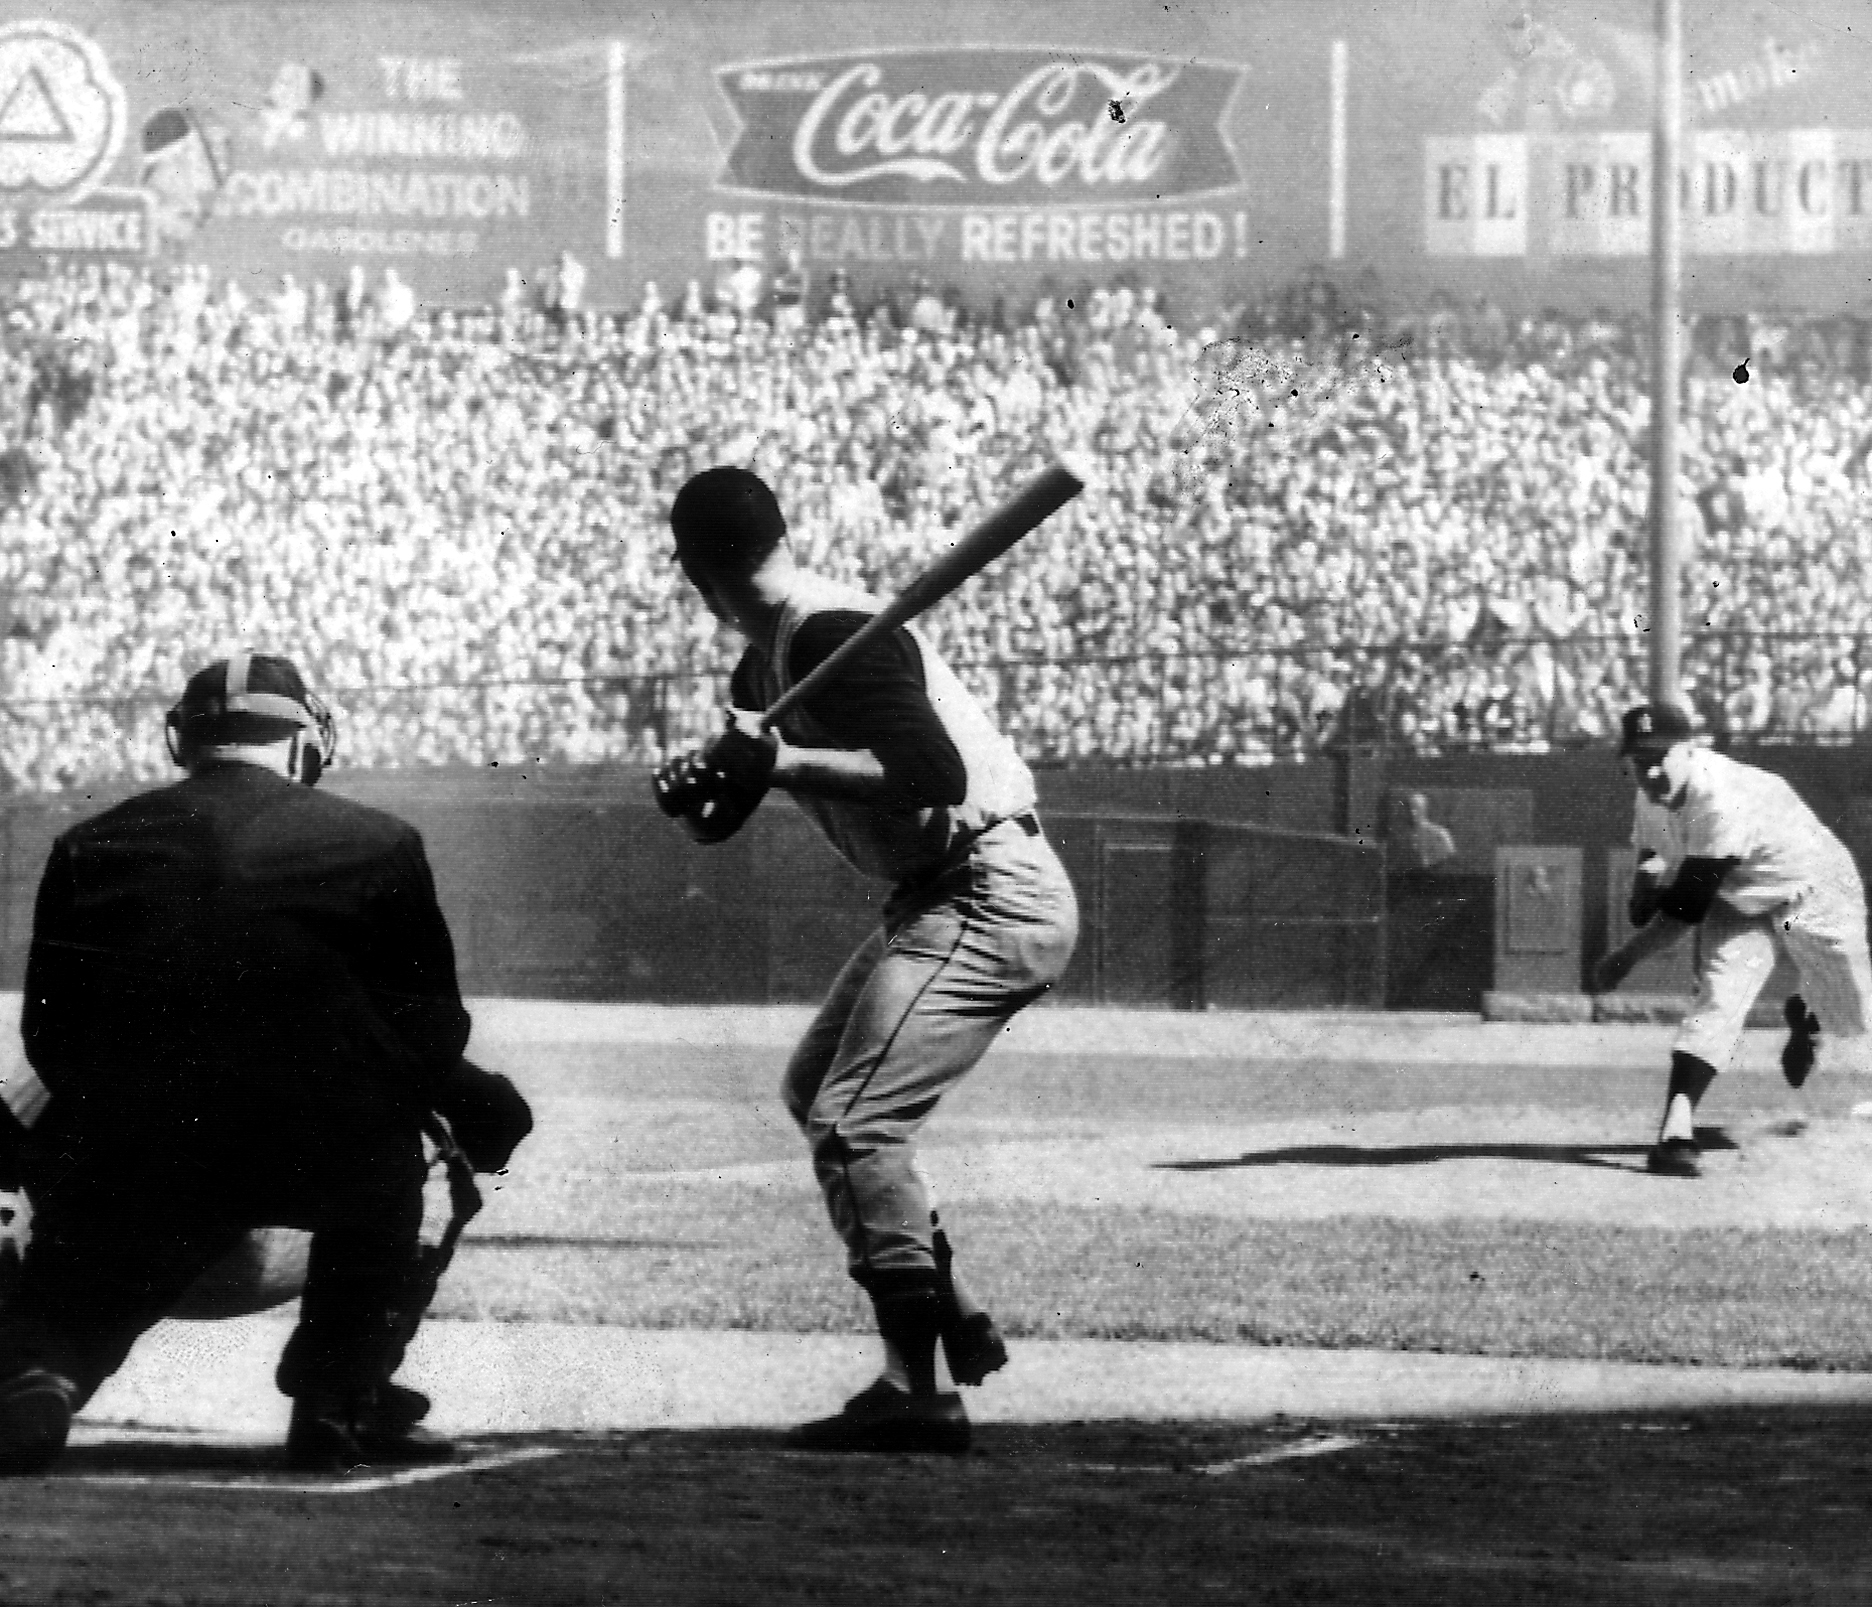 First pitch from Yankee pitcher Whitey Ford comes at Pirate center fielder Bill Virdon in the third World Series game at Yankee Stadium.